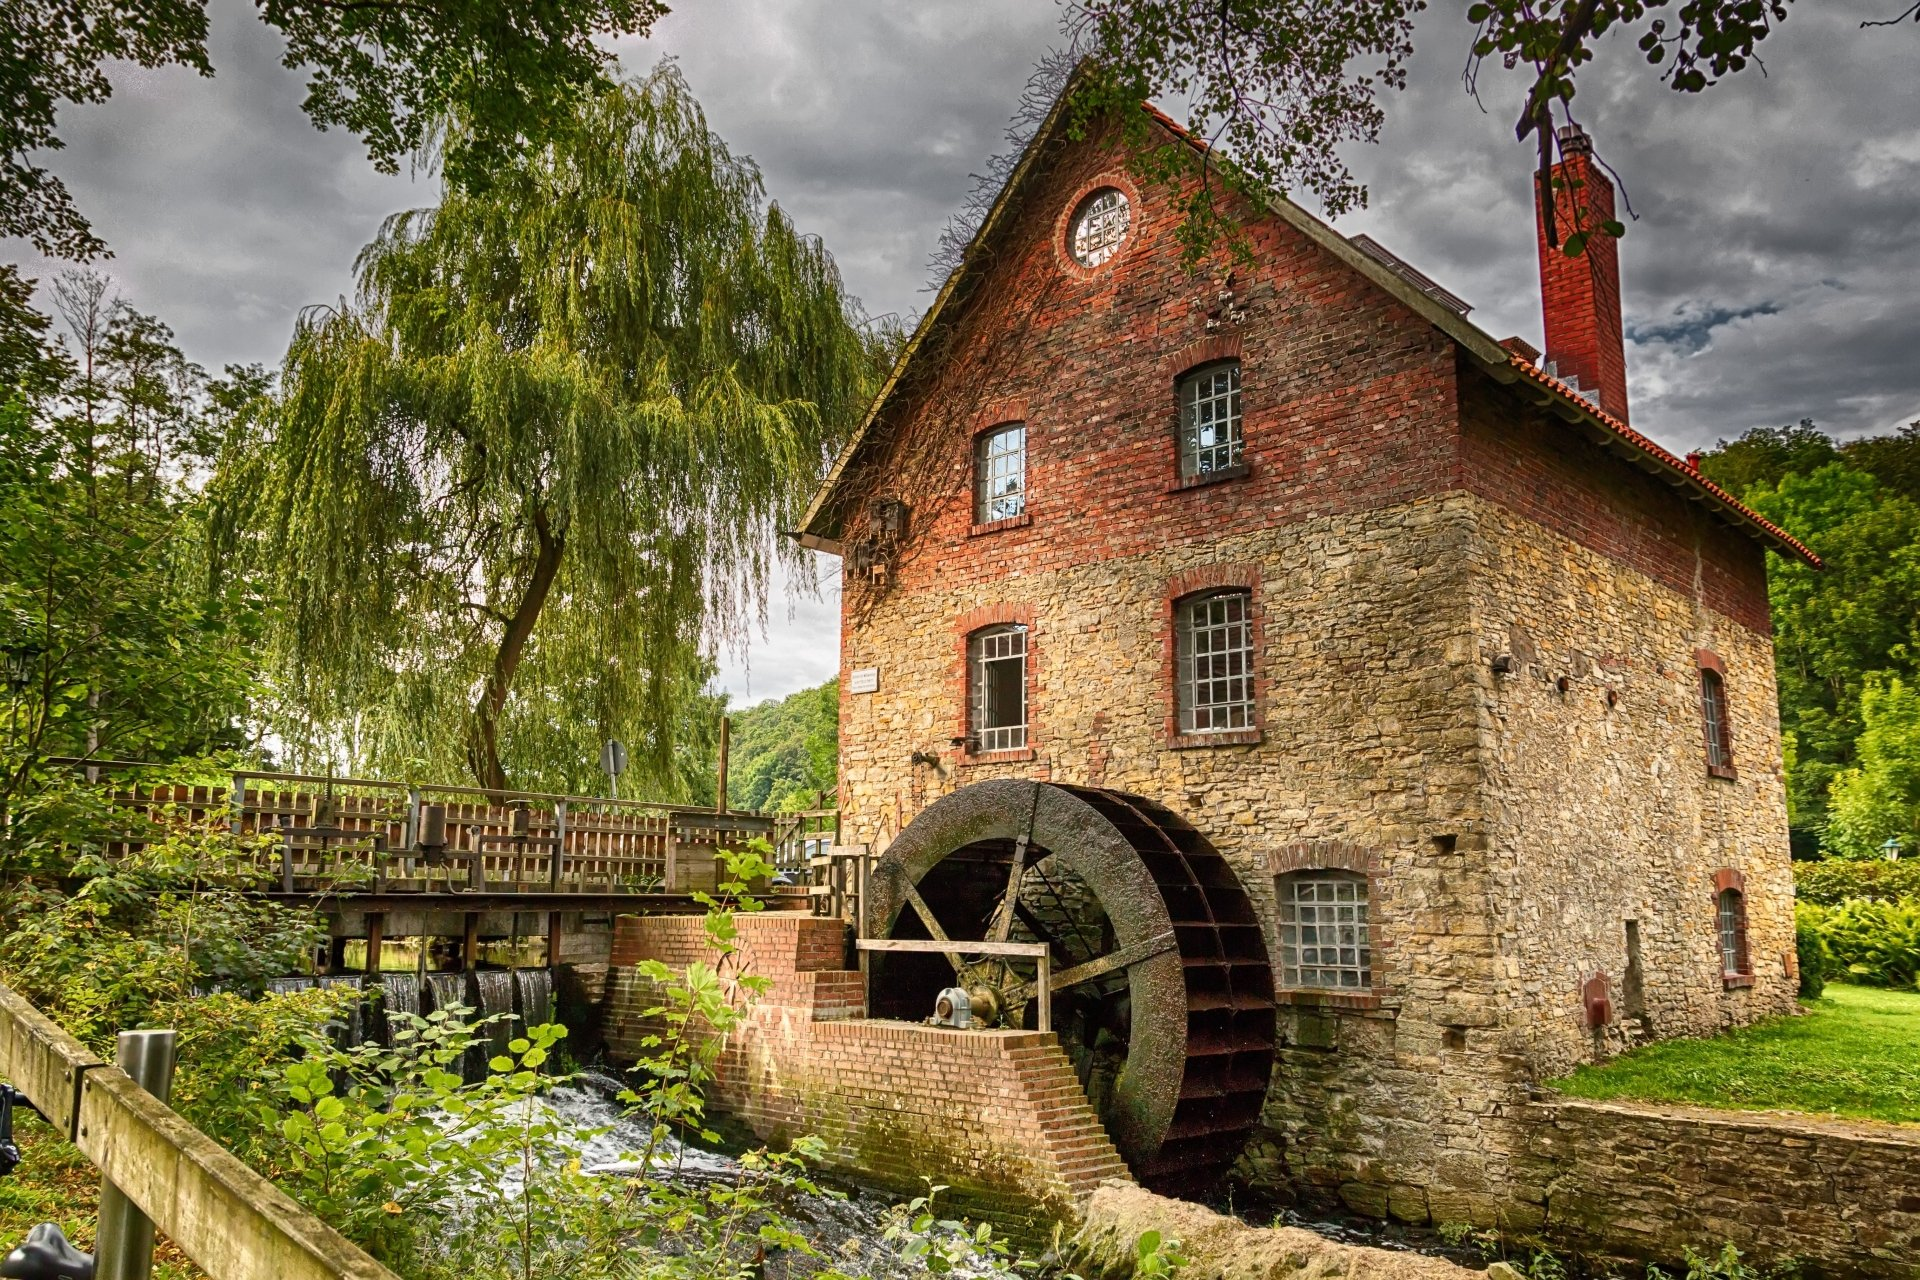 How To Use A Gif As A Wallpaper Iphone Watermill 5k Retina Ultra Hd Wallpaper Background Image